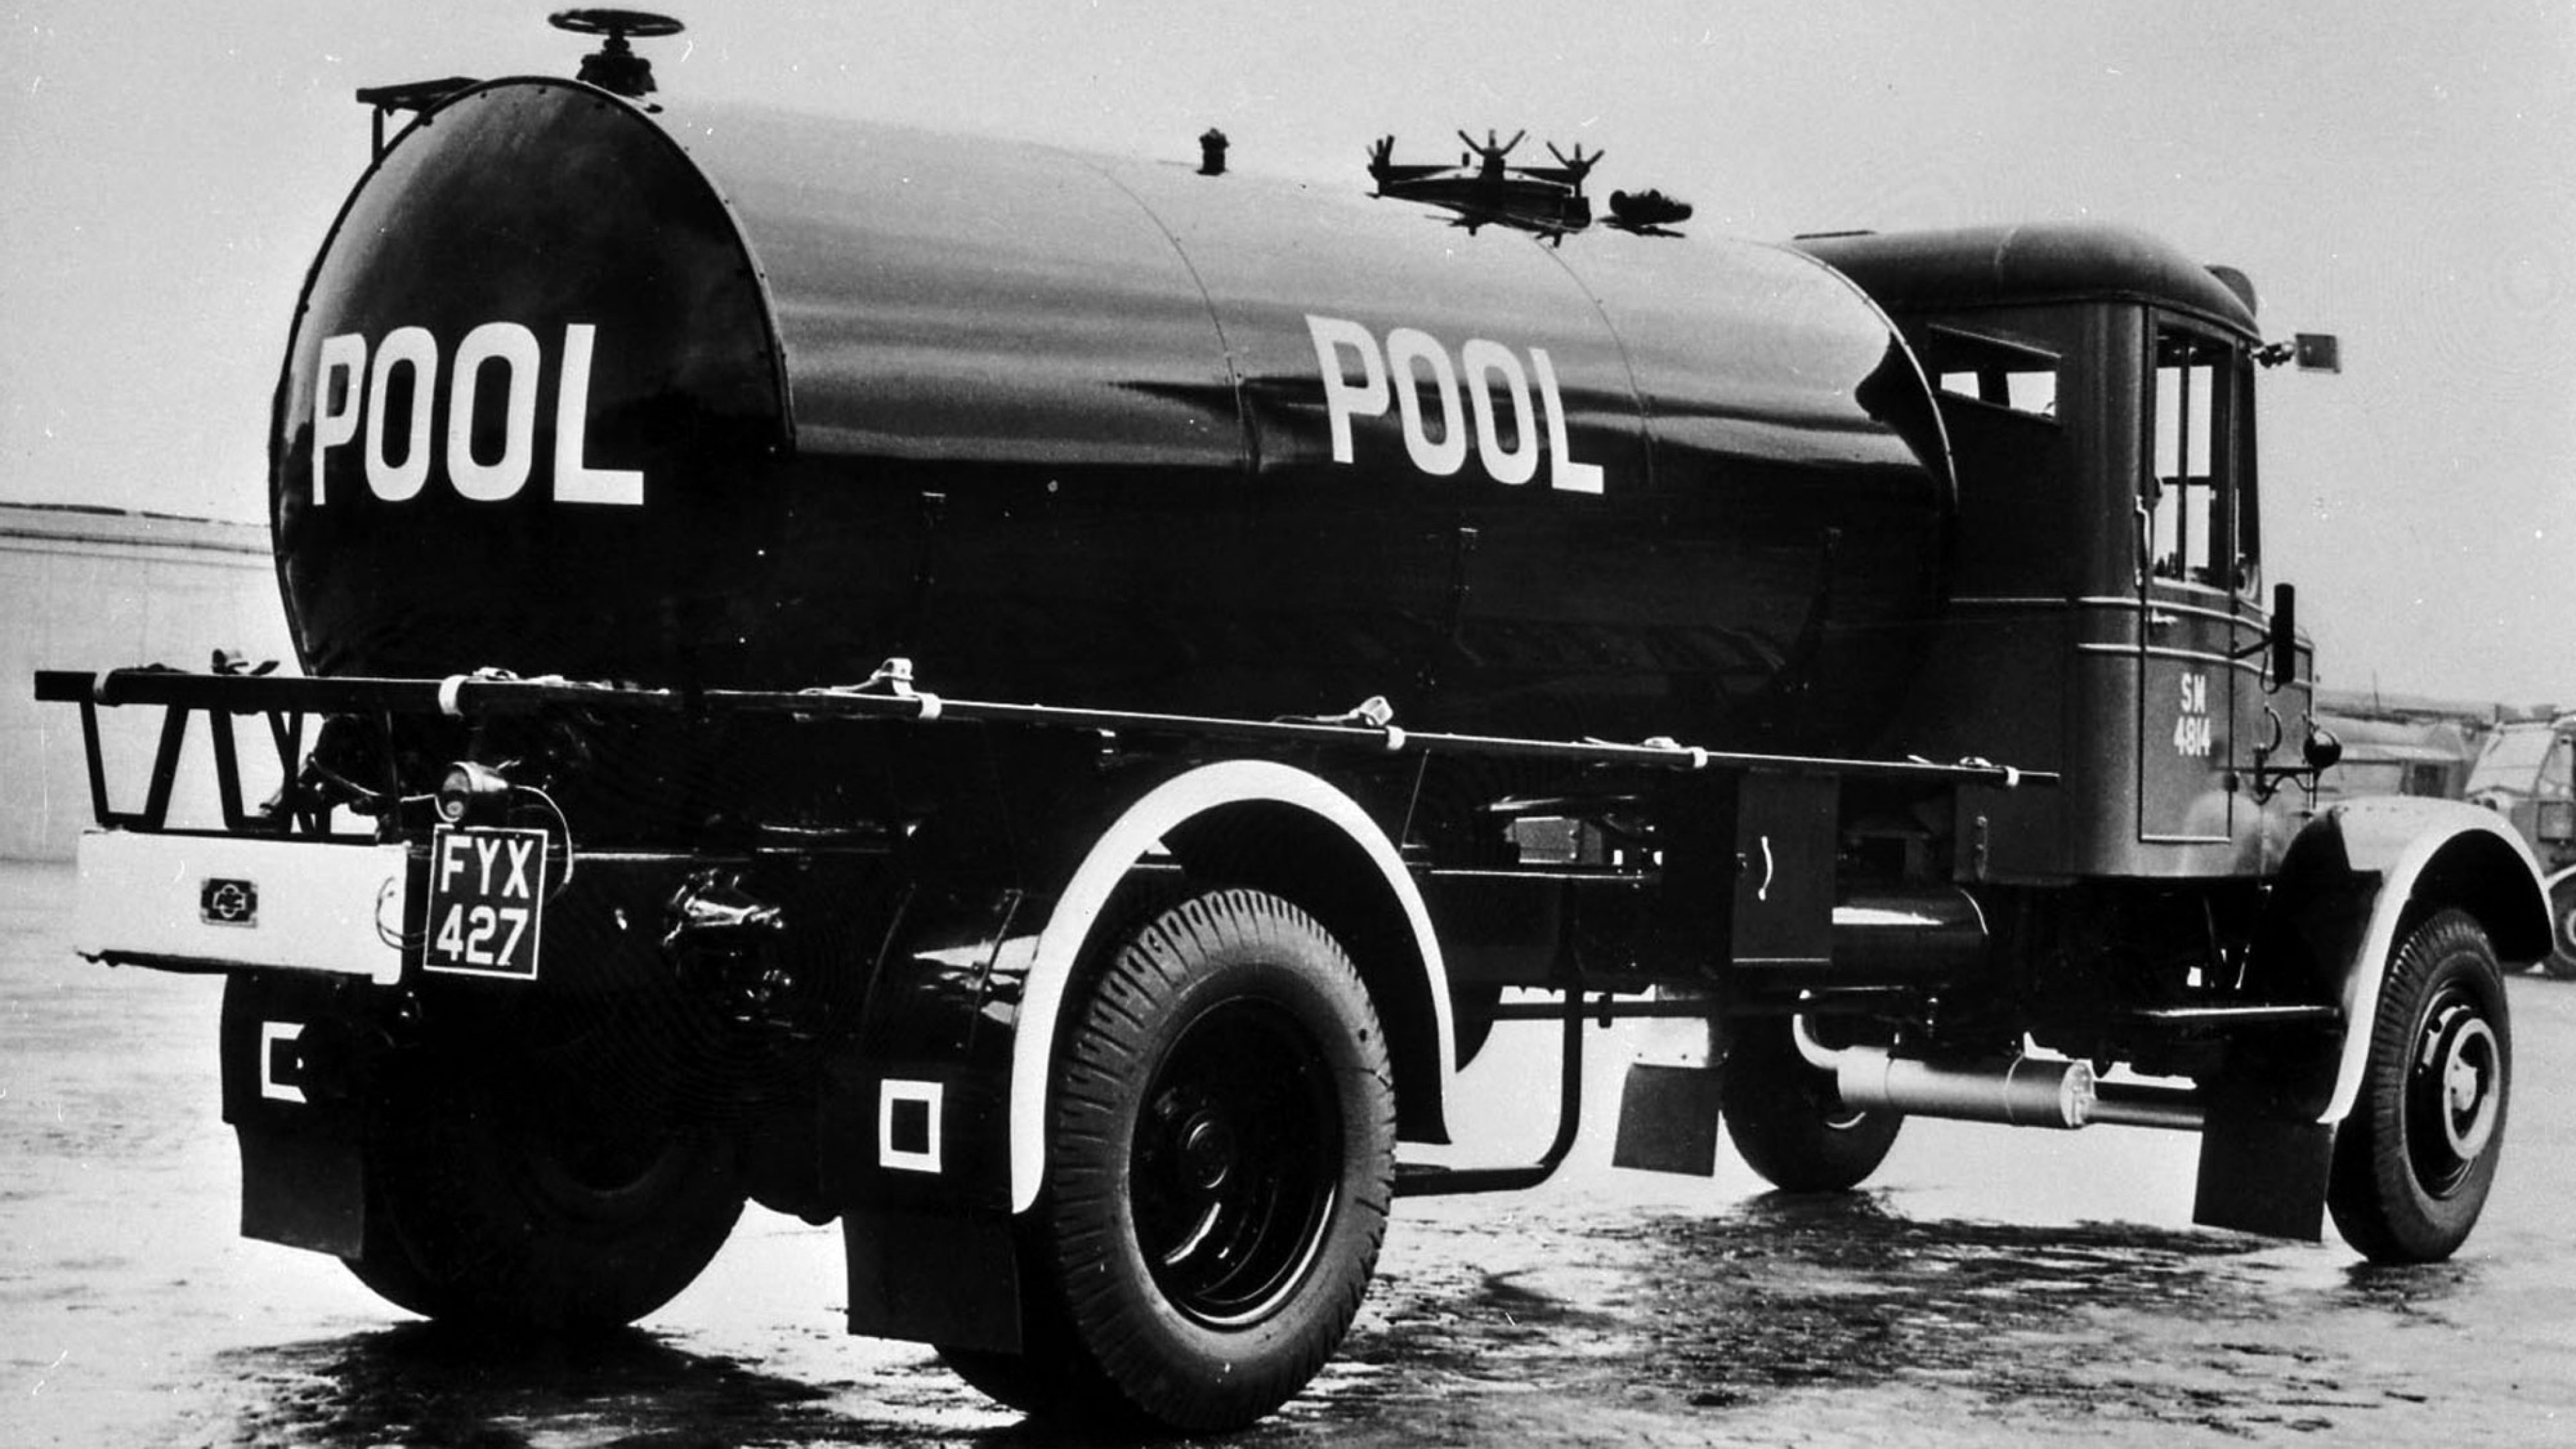 A typical WWII 'pool lorry', with no company branding